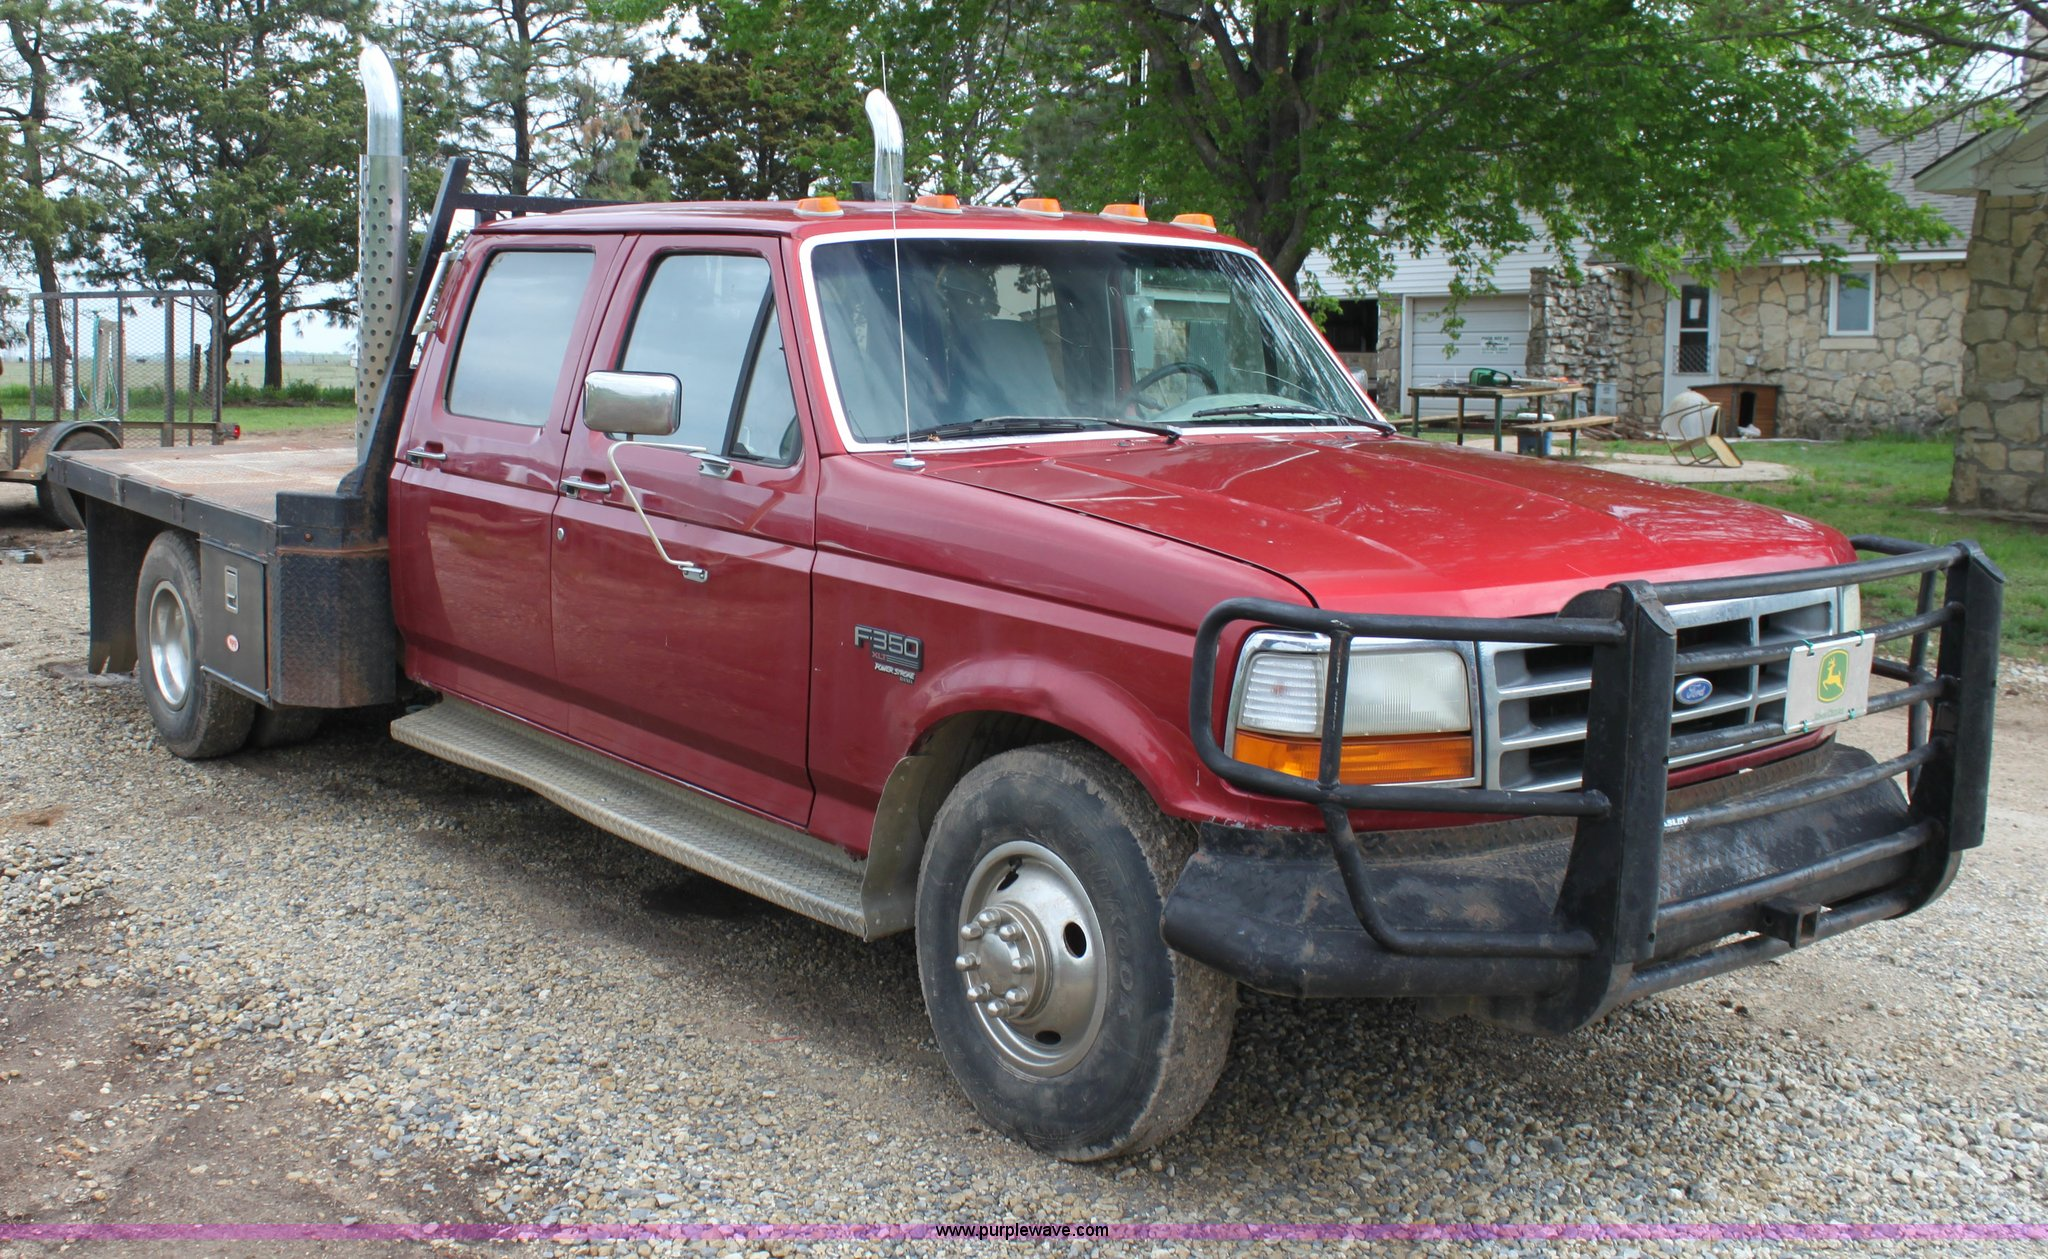 1997 Ford F350 Xlt Crew Cab Flatbed Pickup Truck In Douglass Ks Item H7500 Sold Purple Wave